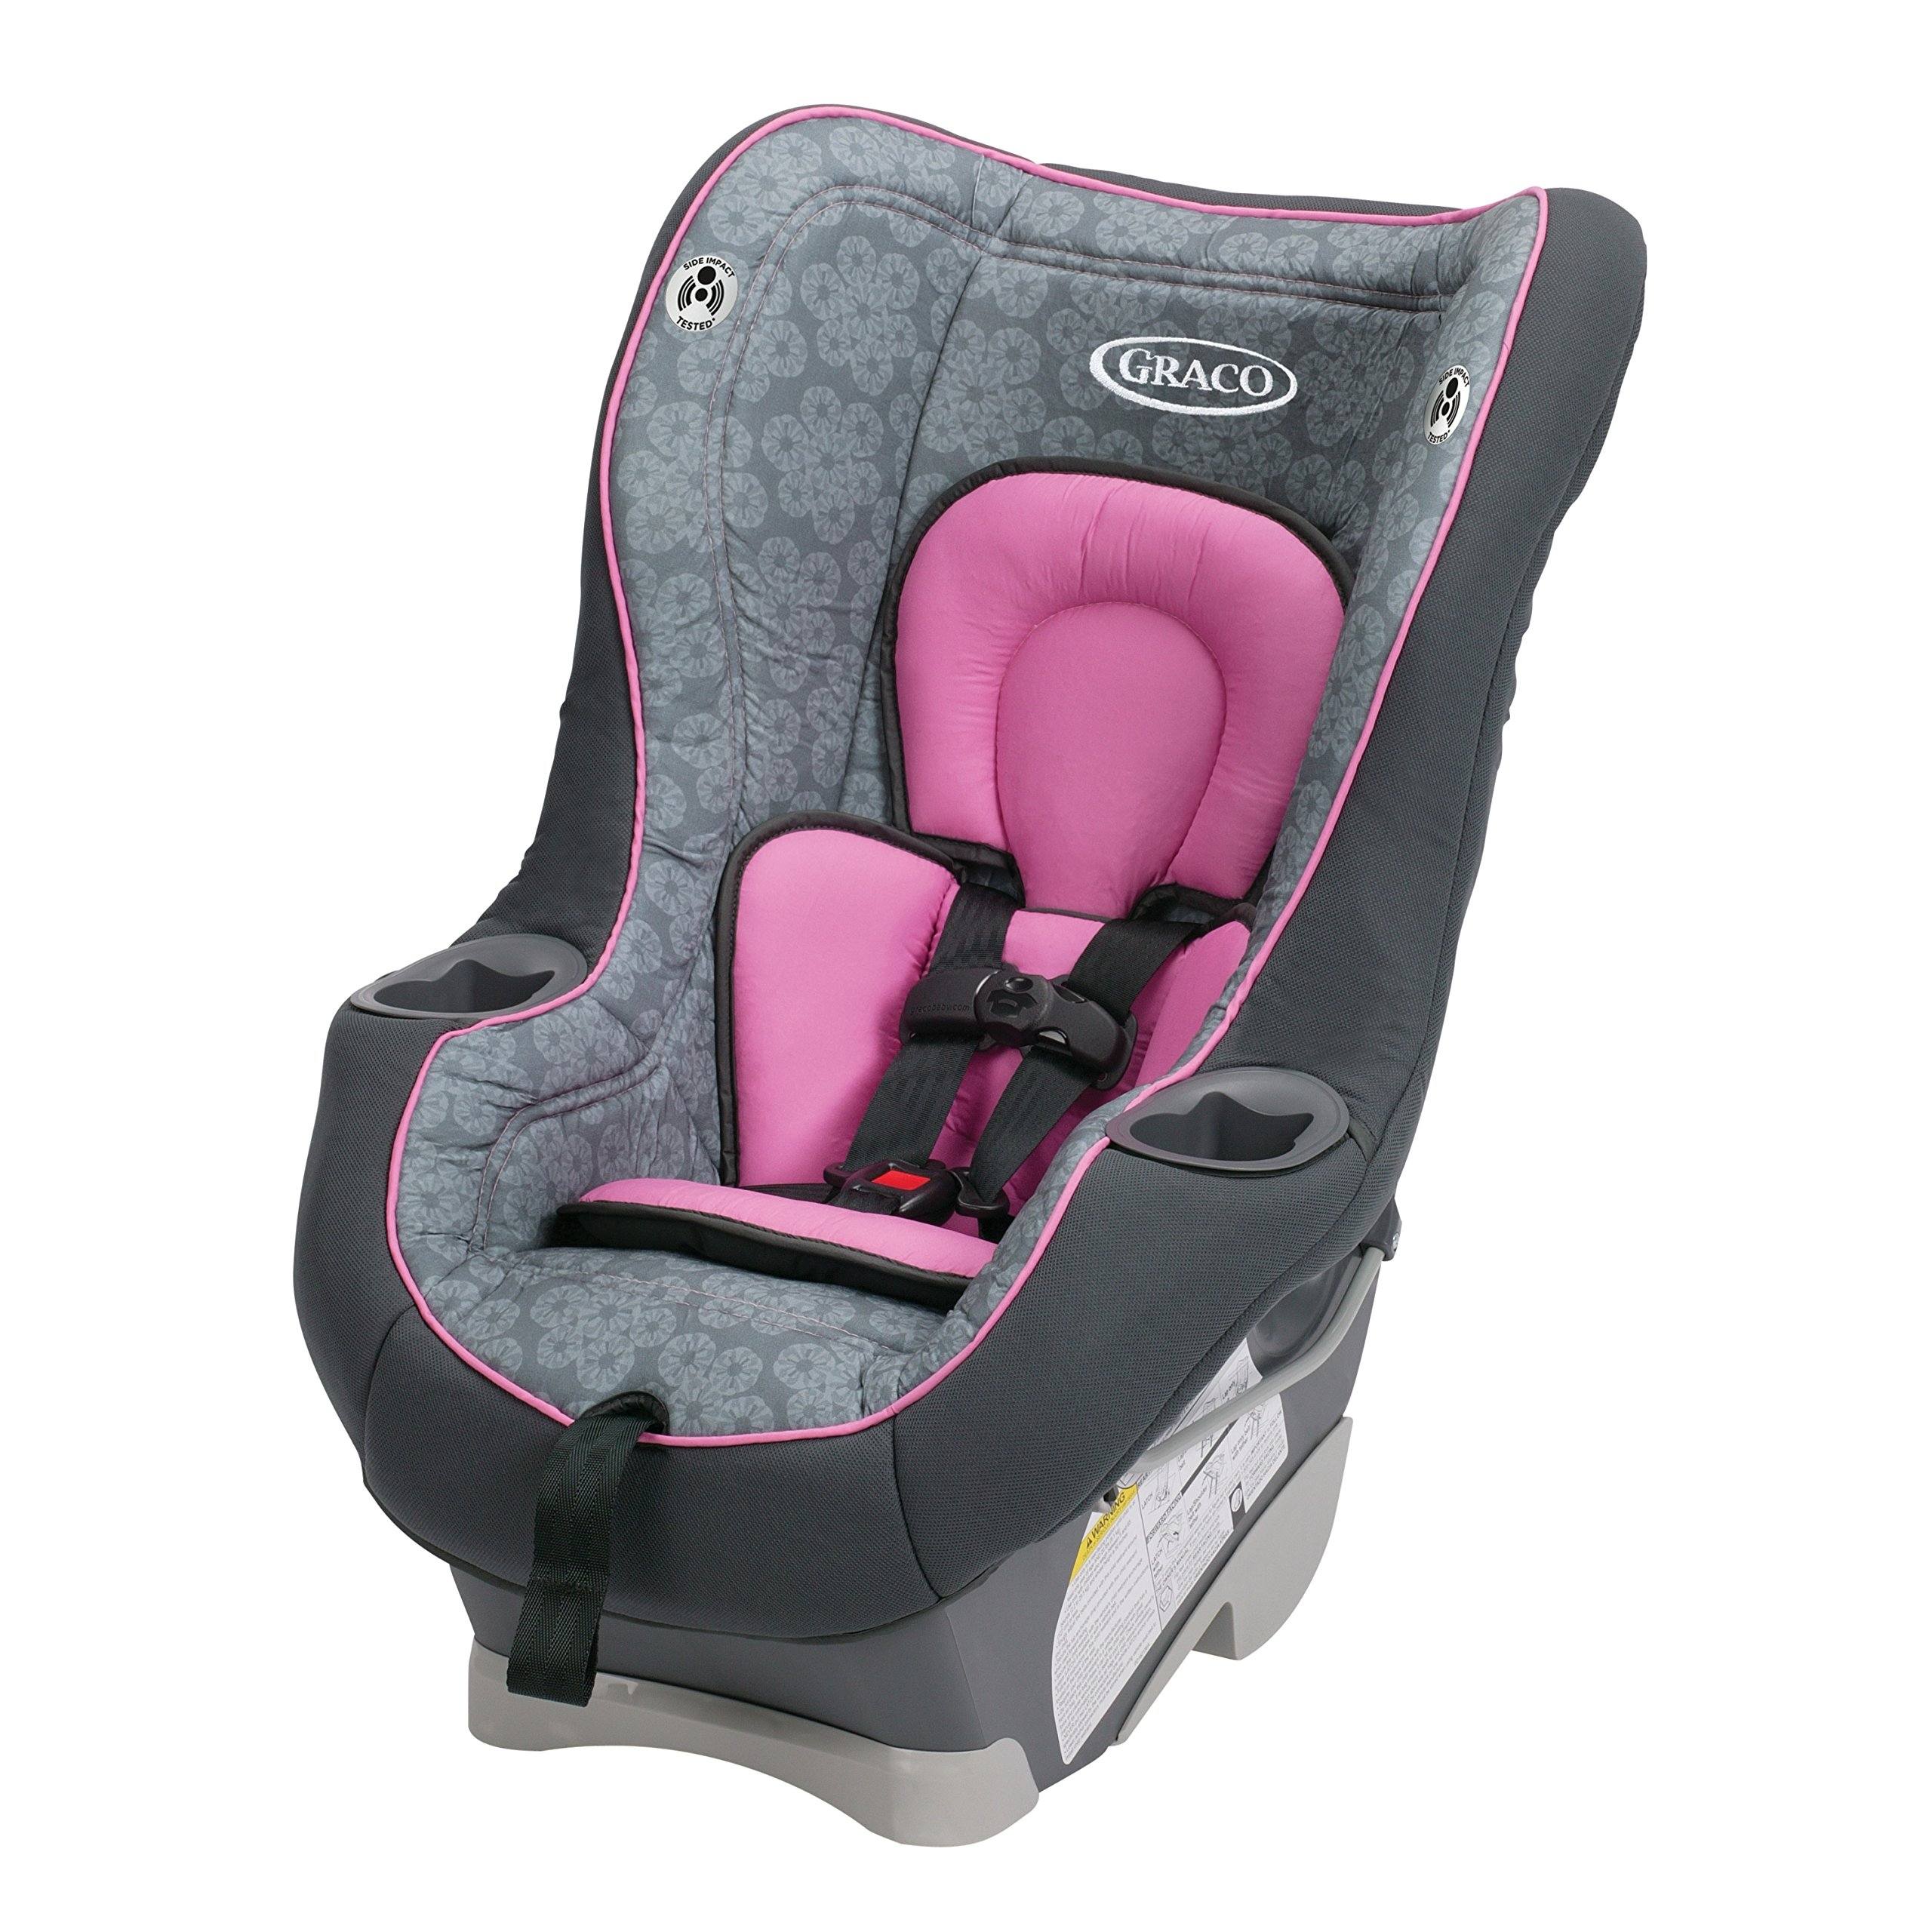 Amazon.com : Graco My Ride 65 Convertible Car Seat, Sully, One Size